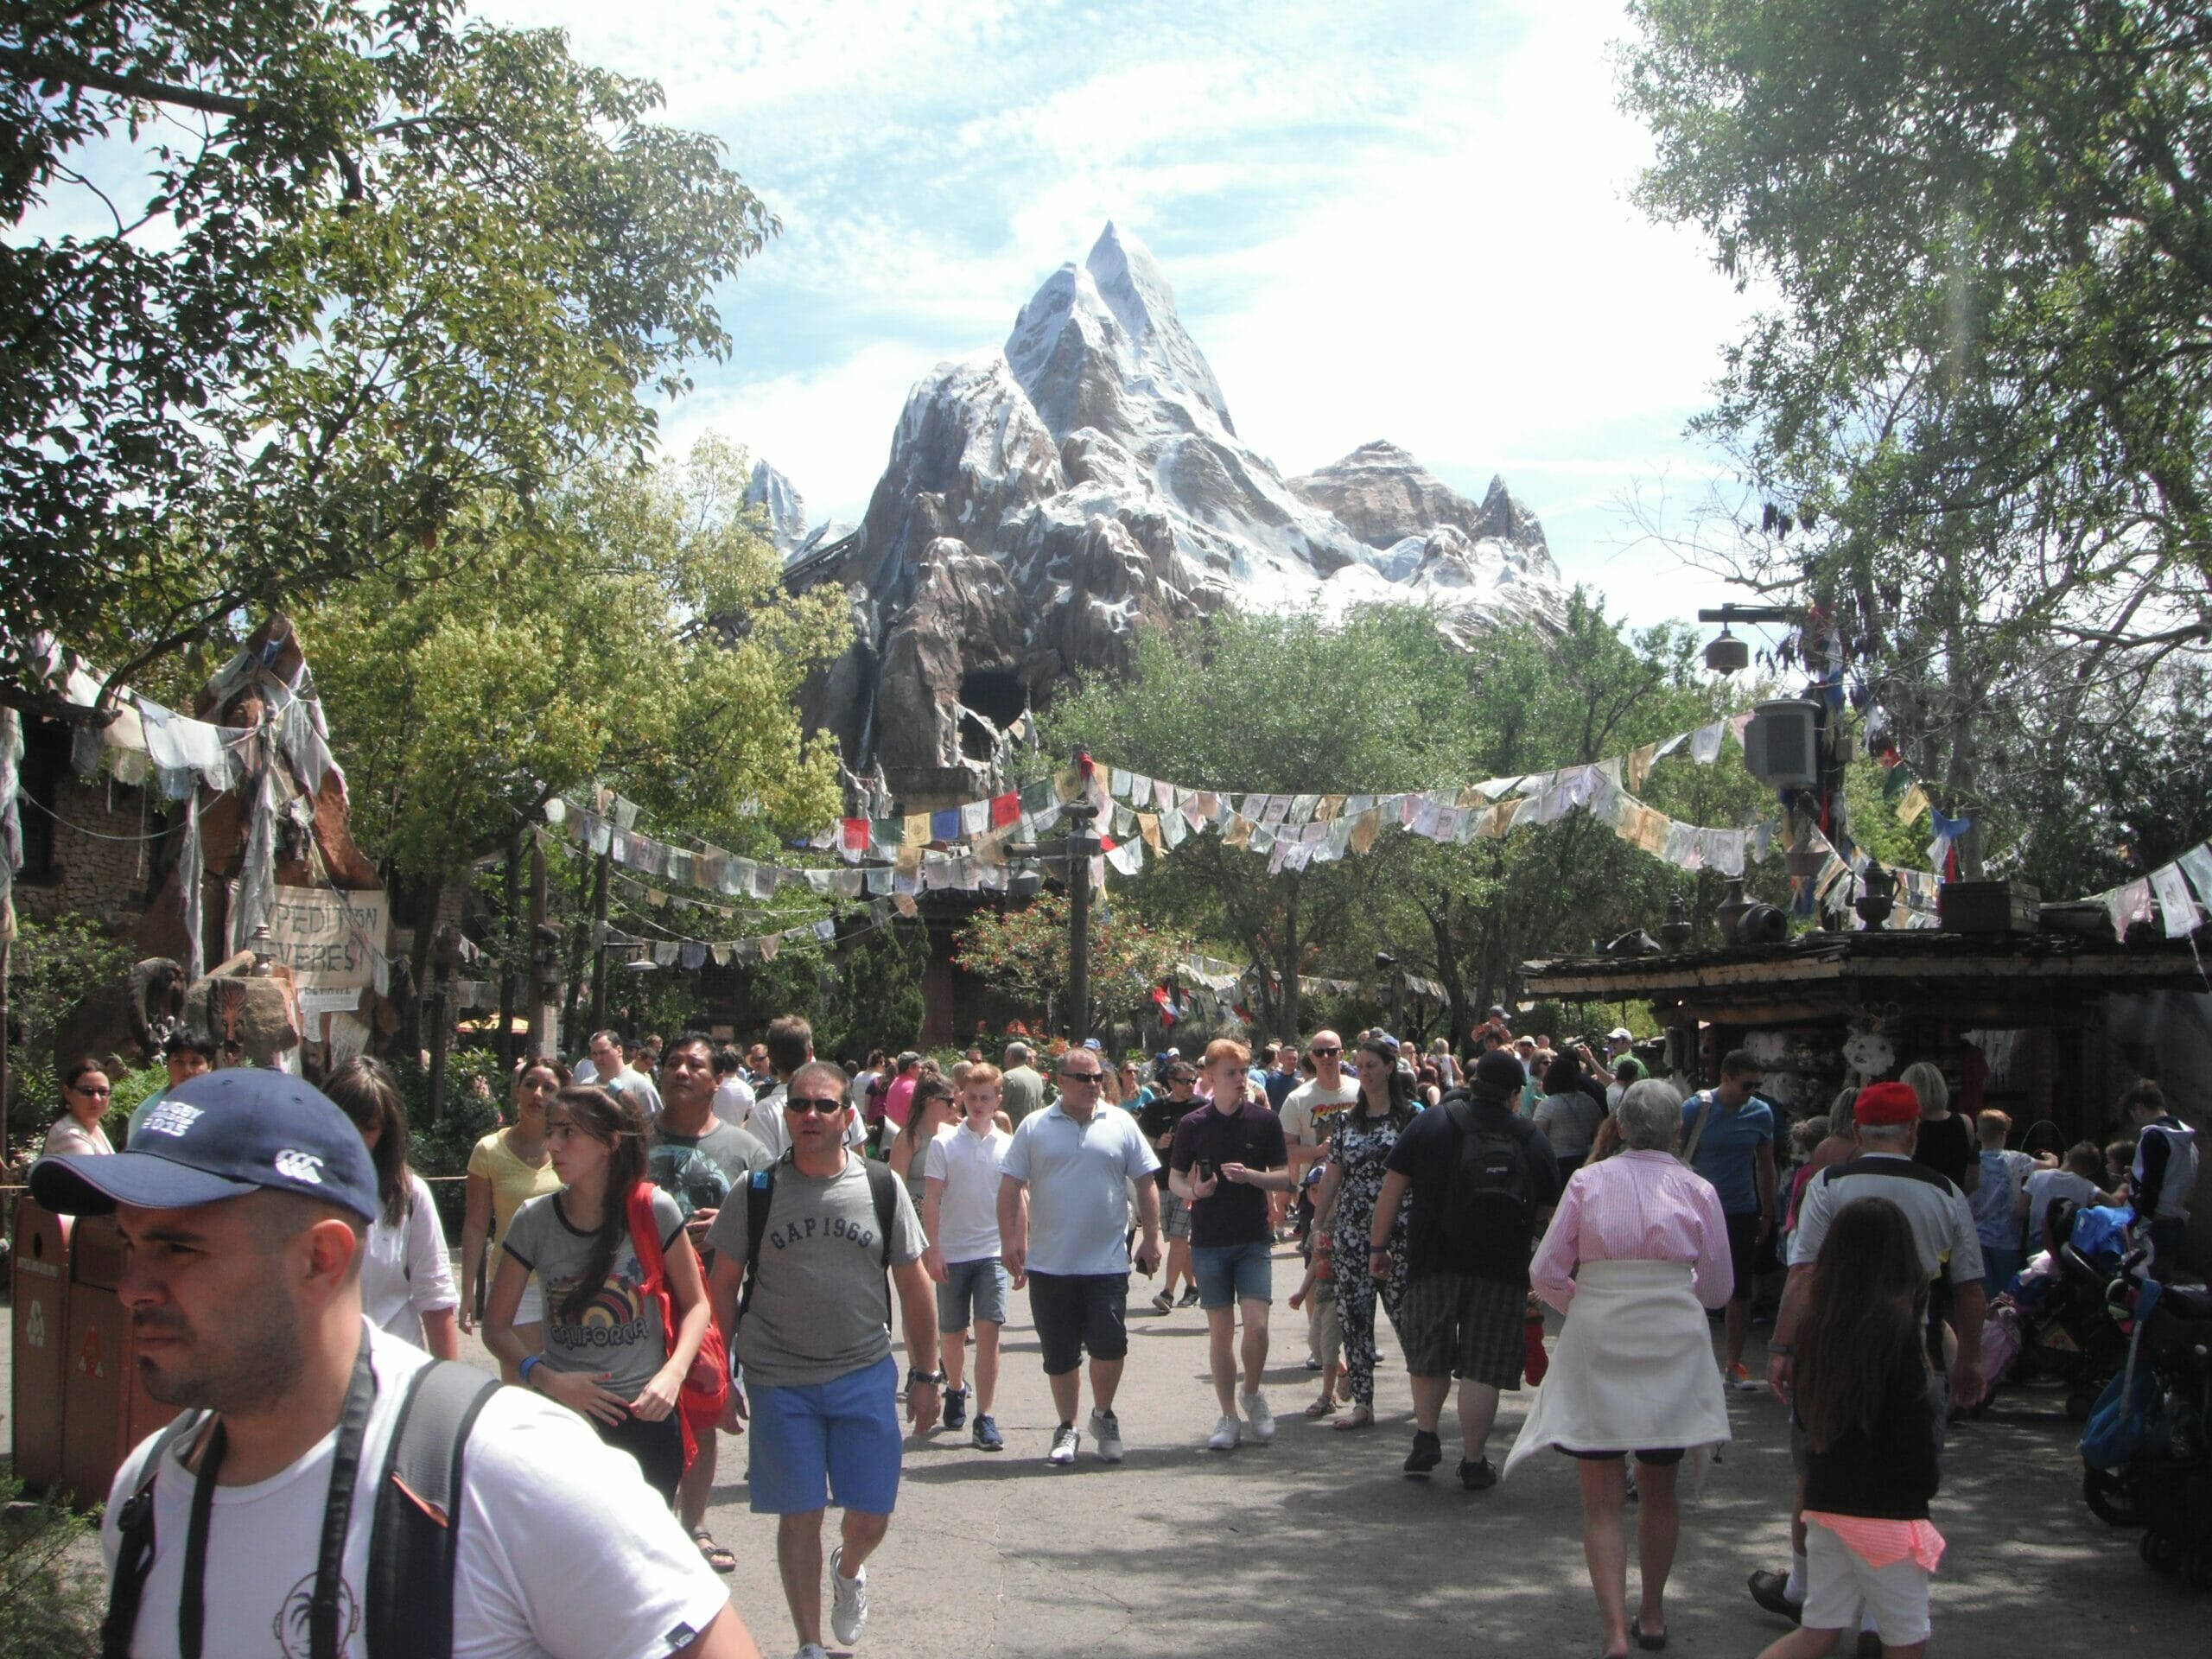 People walking along at Animal Kingdom with Expedition Everest in the background and colorful flags above